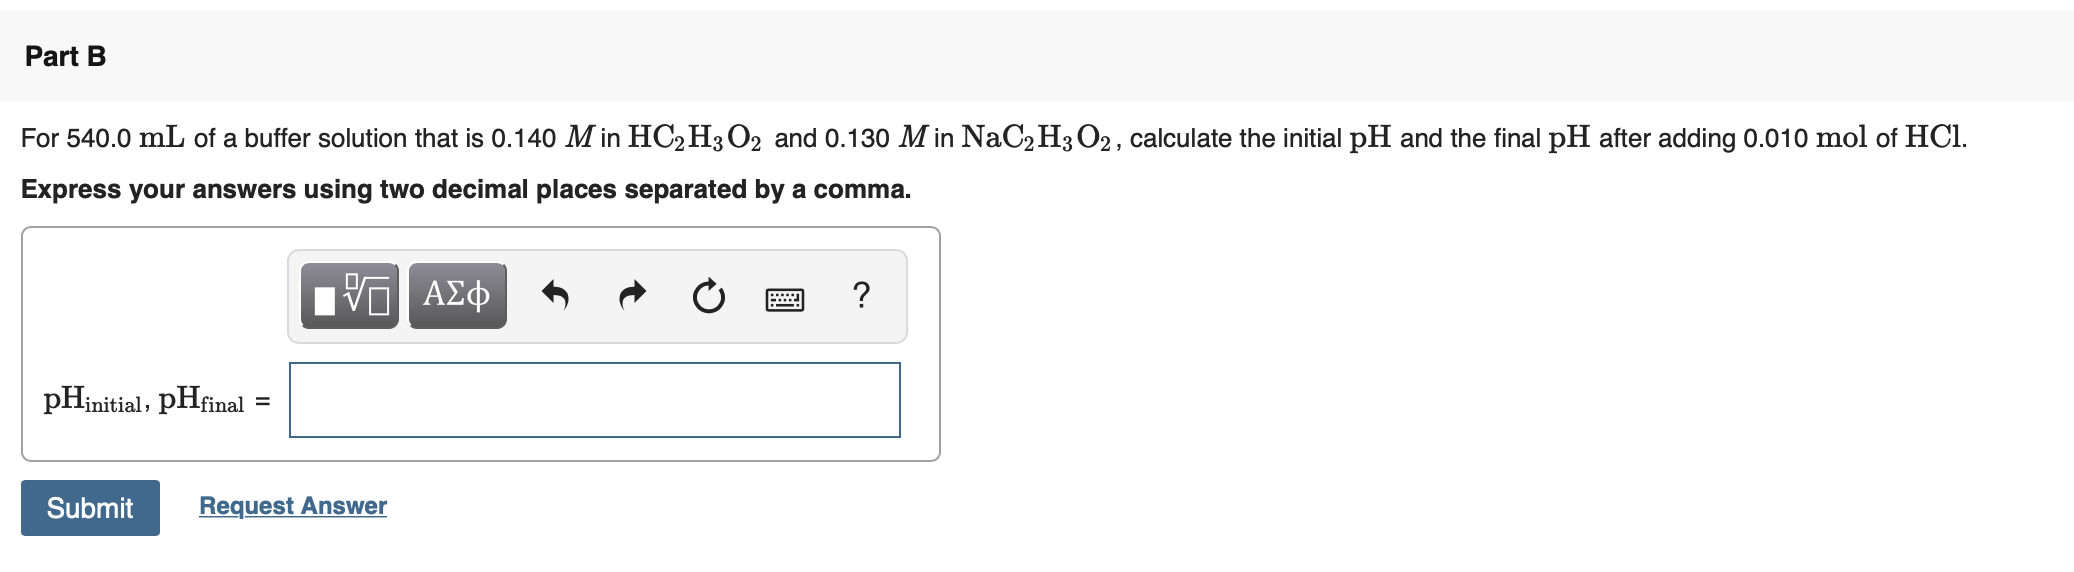 Part B For 540.0 mL of a buffer solution that is 0.140 M in HC2 H3O2 and 0.130 M in NaC2H3 O2, calculate the initial pH and the final pH after adding 0.010 mol of HCl. Express your answers using two decimal places separated by a comma. μνα ΑΣφ pHinitial, pHfinal = Submit Request Answer